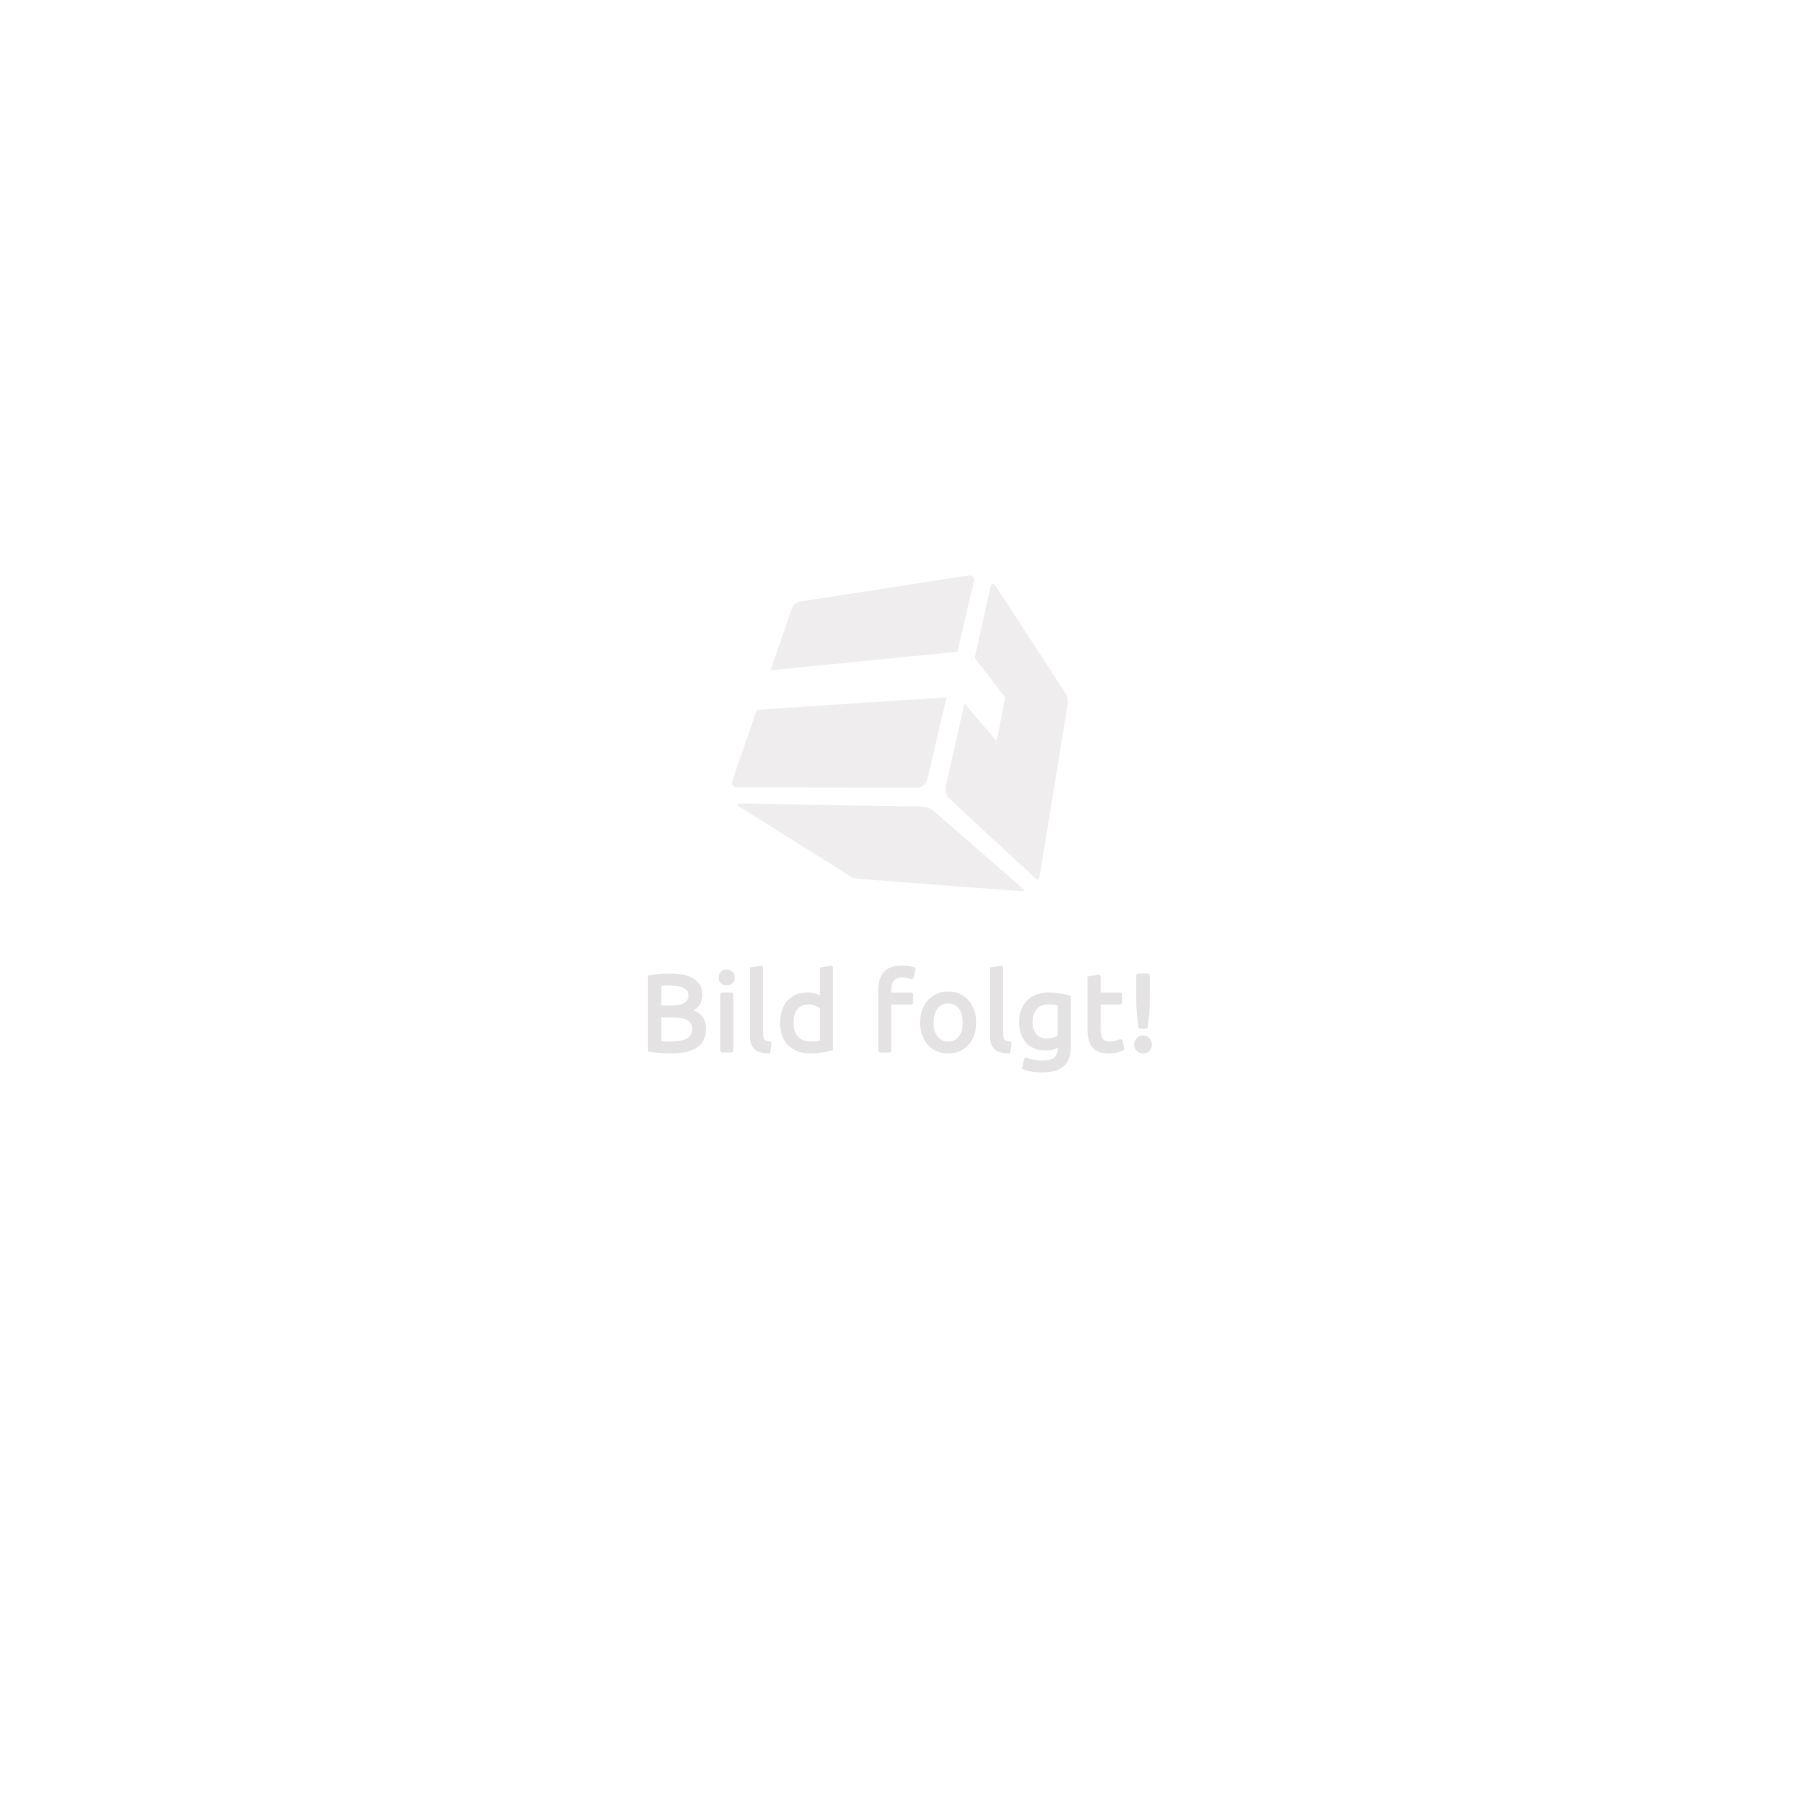 Table de massage Pliante 3 Zones Aluminium Portable + Housse blanc